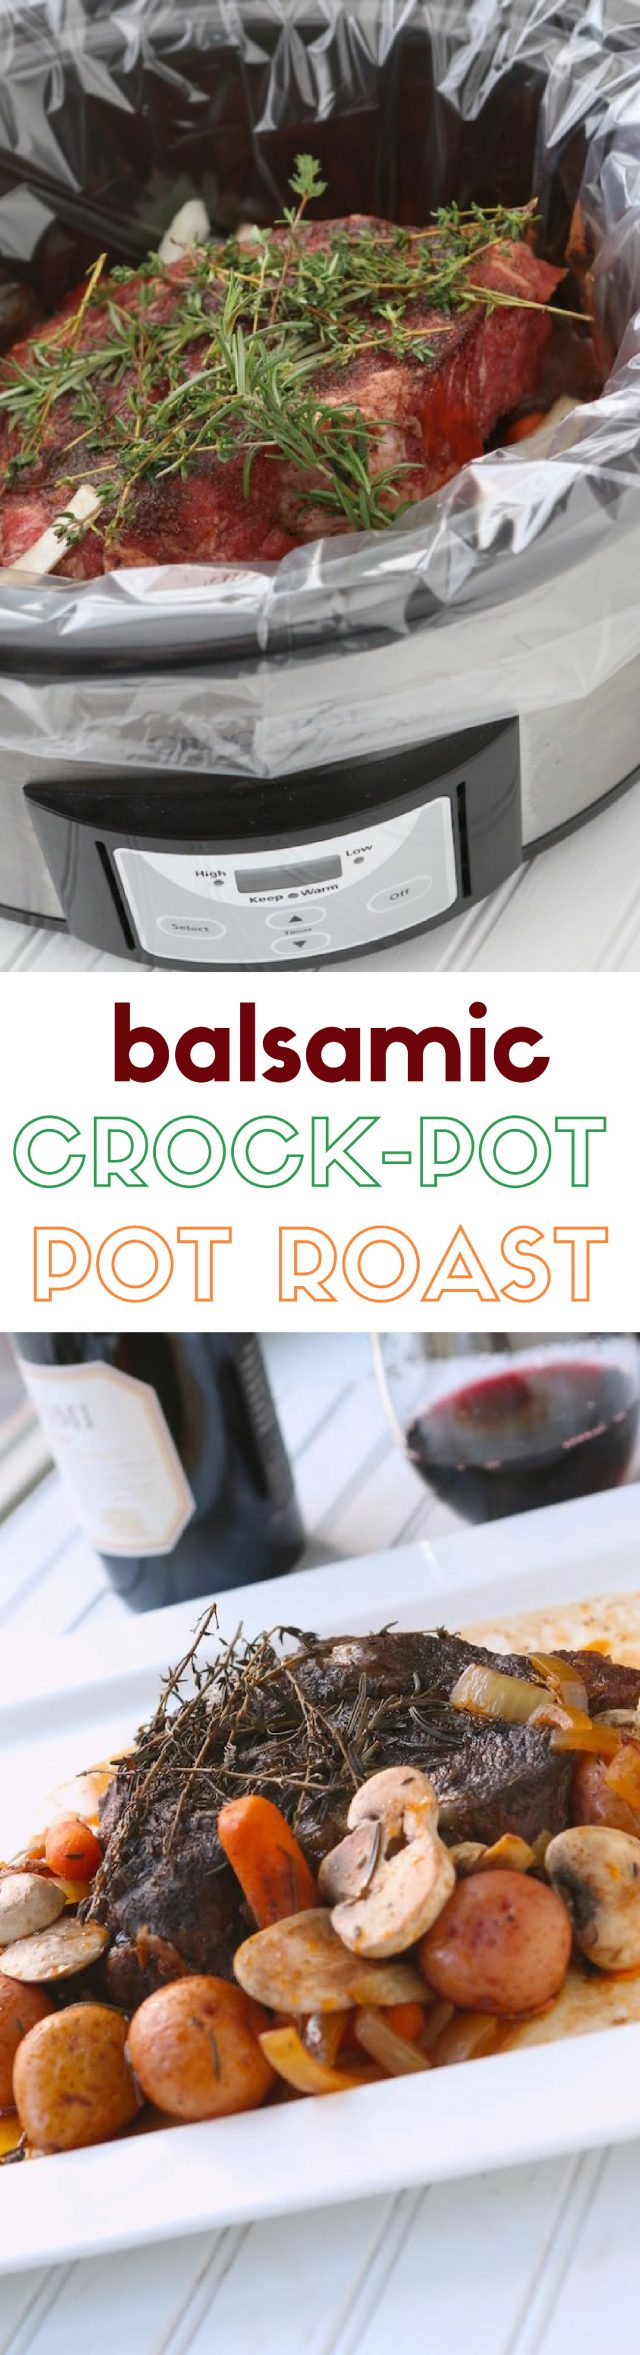 Crockpot Slow Cooker Balsamic Pot Roast Recipe - A gorgeous pot roast over flavorful mushrooms, carrots, and new potatoes - yum!